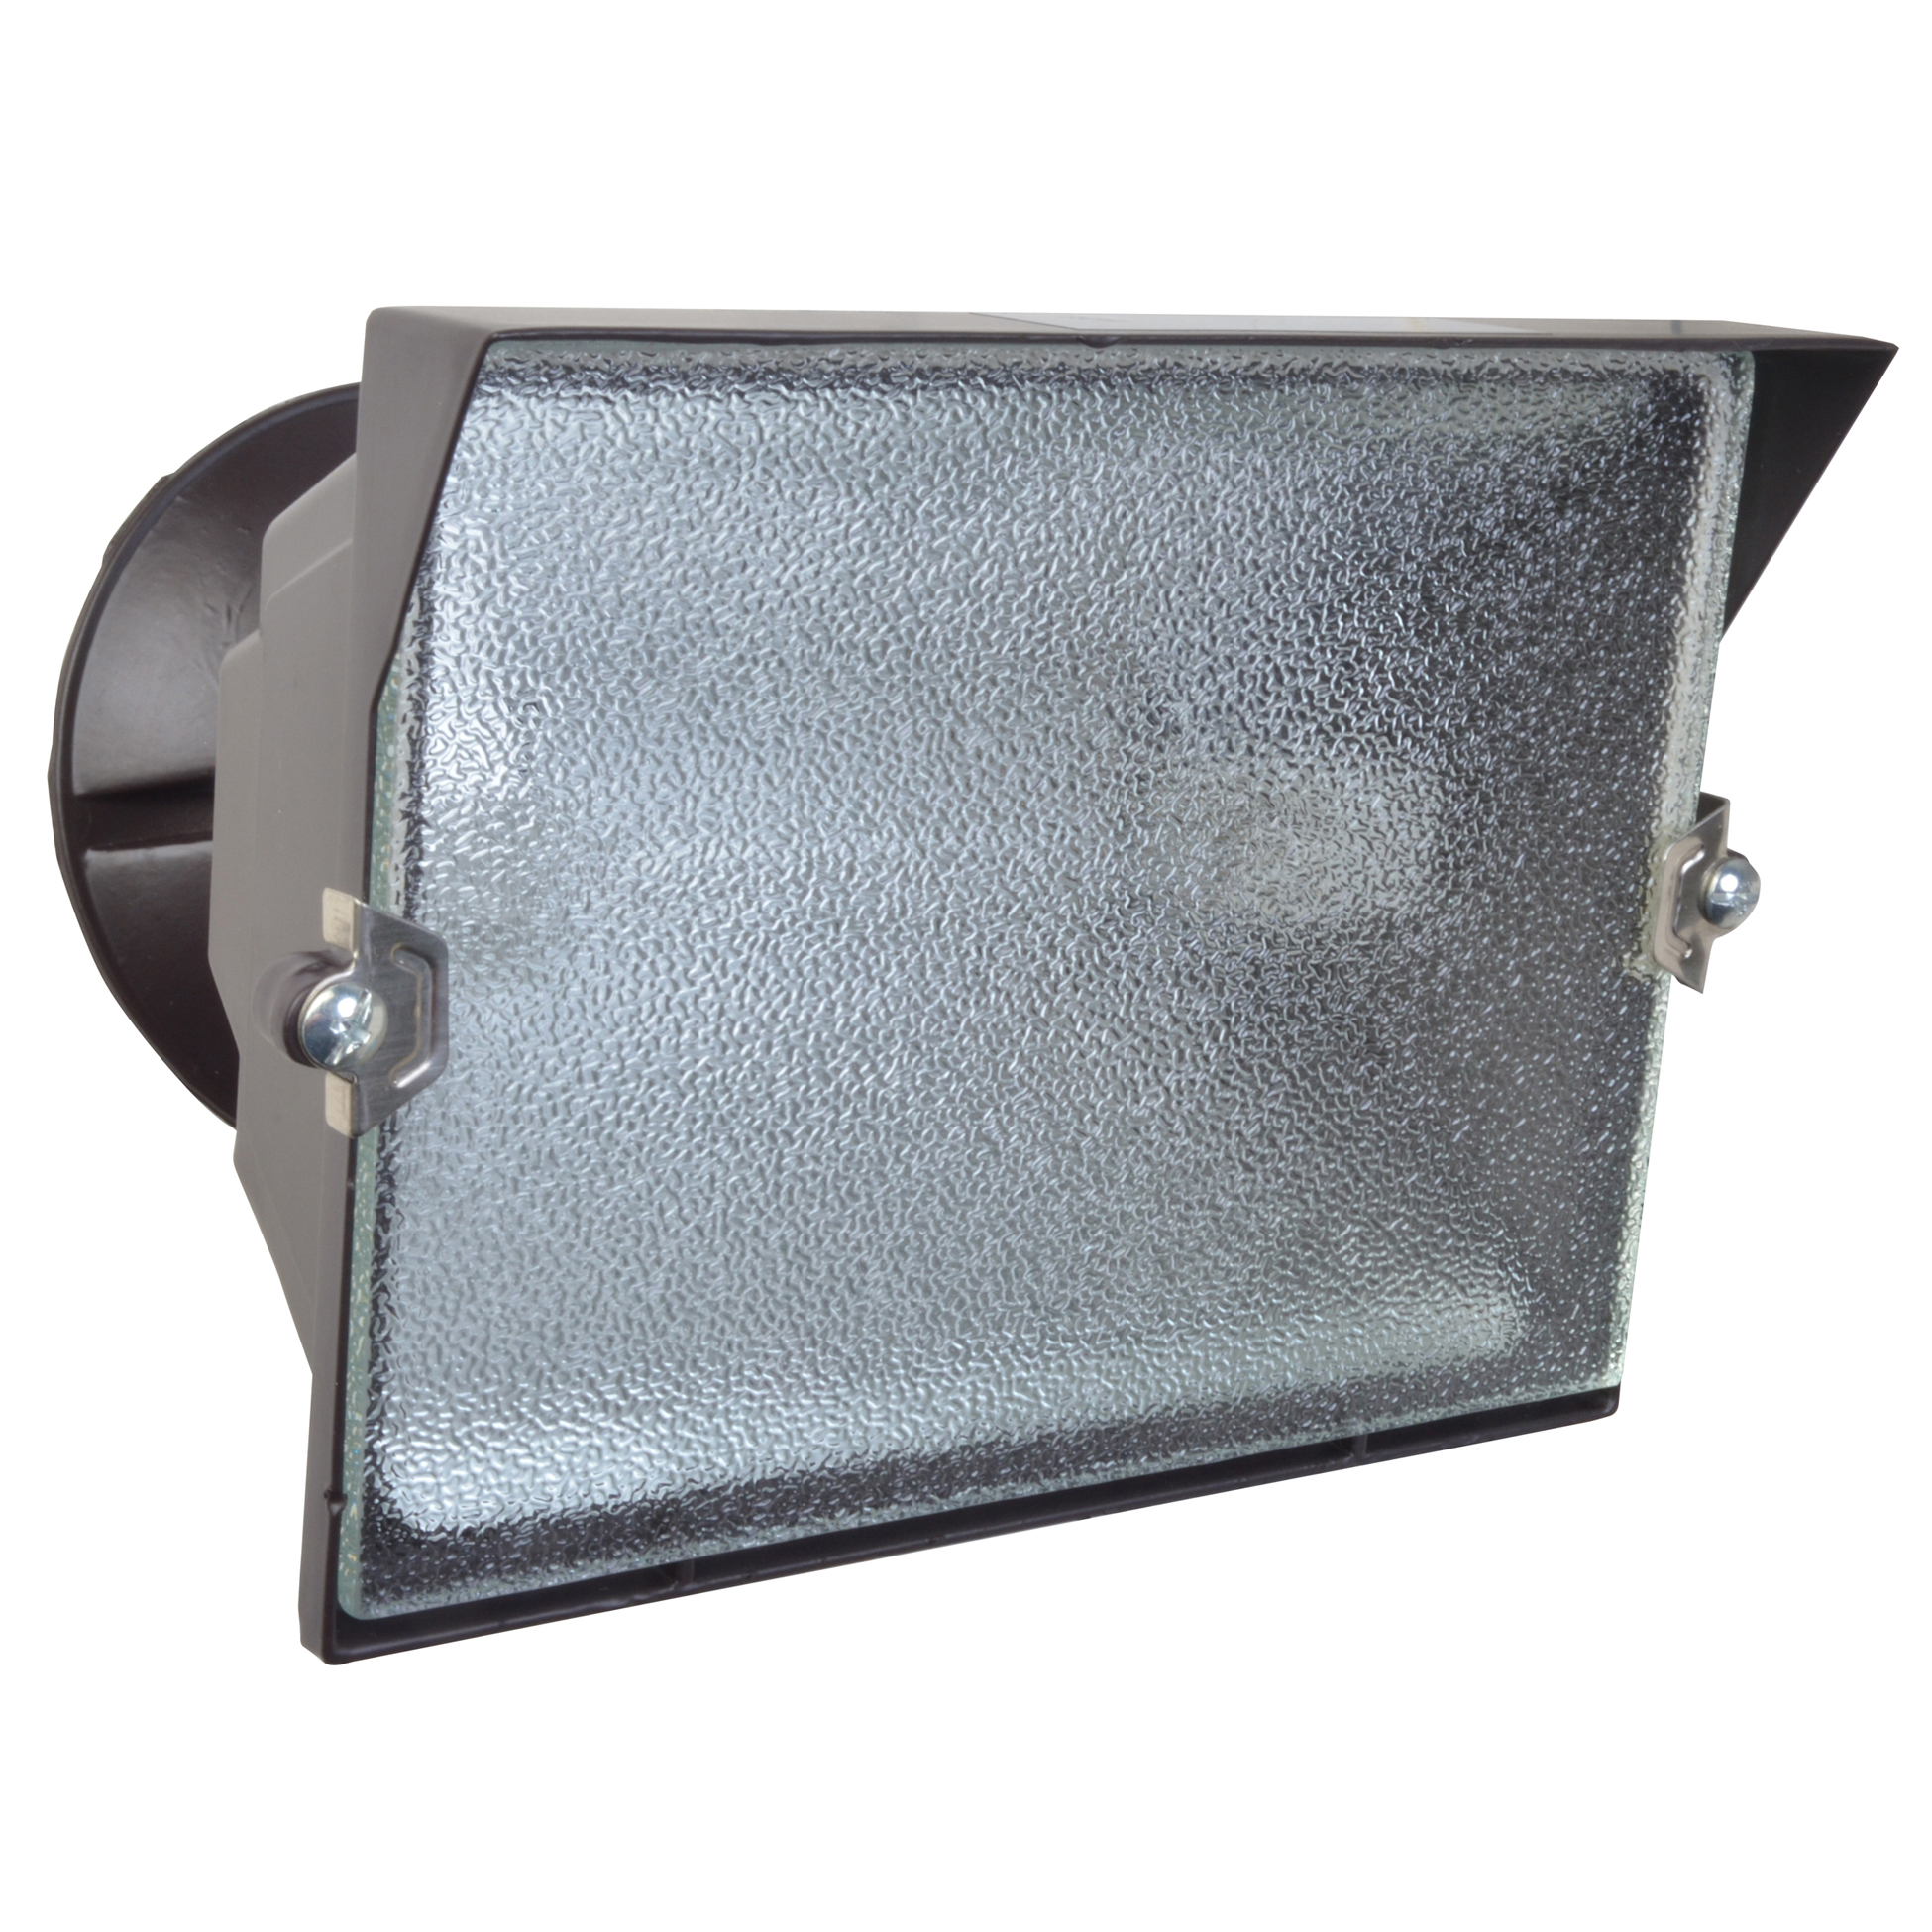 LIGHT, SECURITY 300W HALOGEN FLOOD